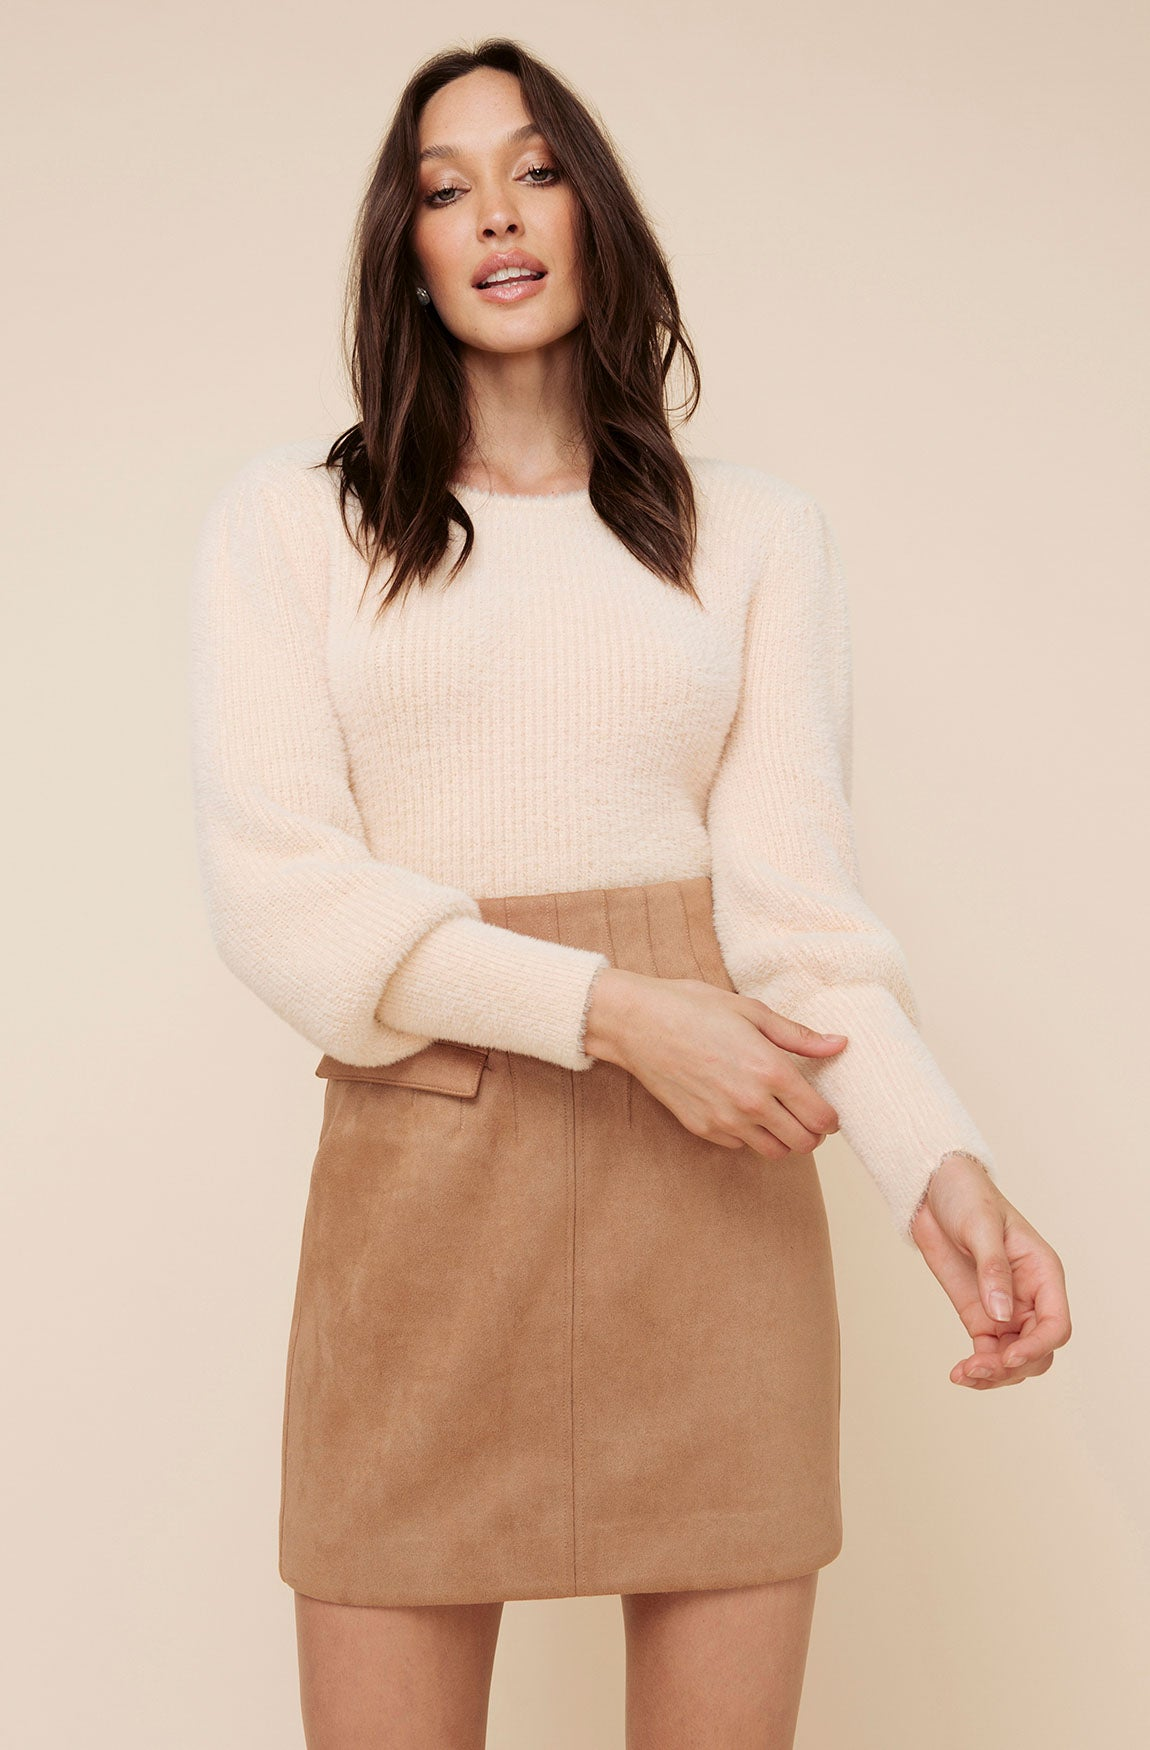 HEARTBREAKER KNIT JUMPER